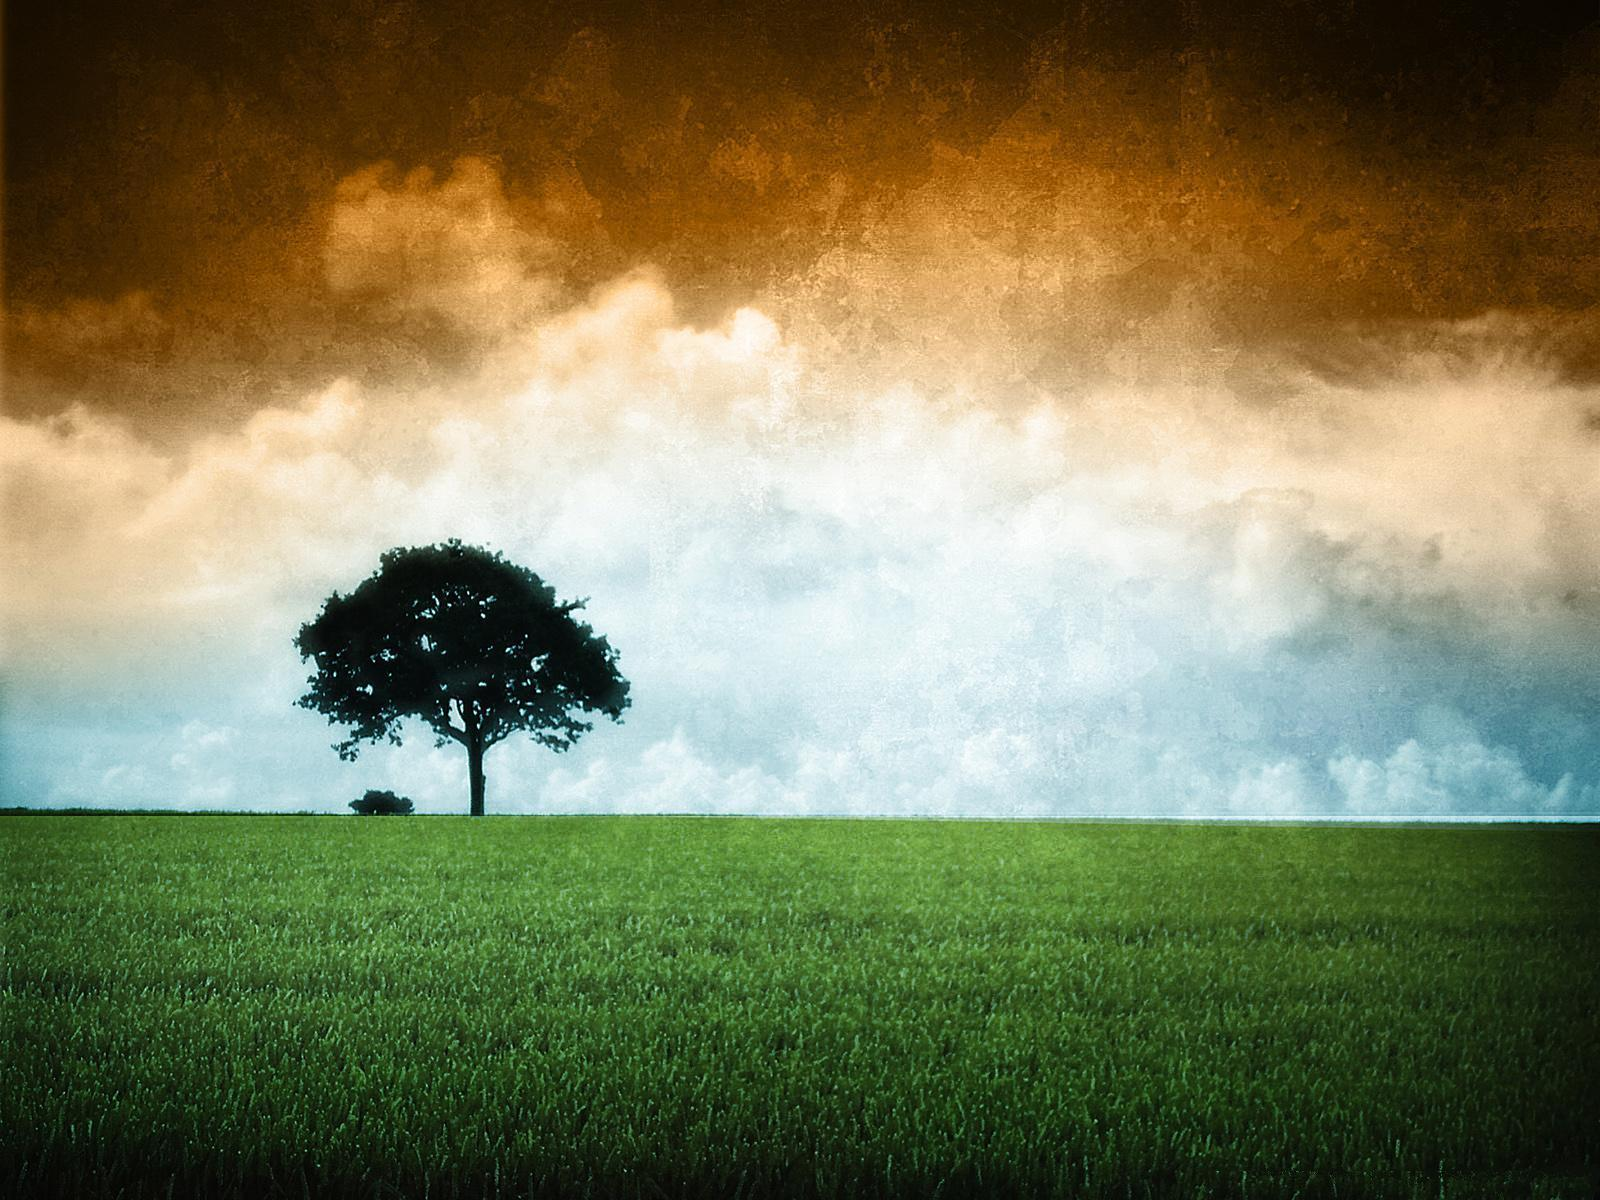 Love Wallpaper Hd Full Size 2017 : Indian Flag Wallpapers 2015 - Wallpaper cave